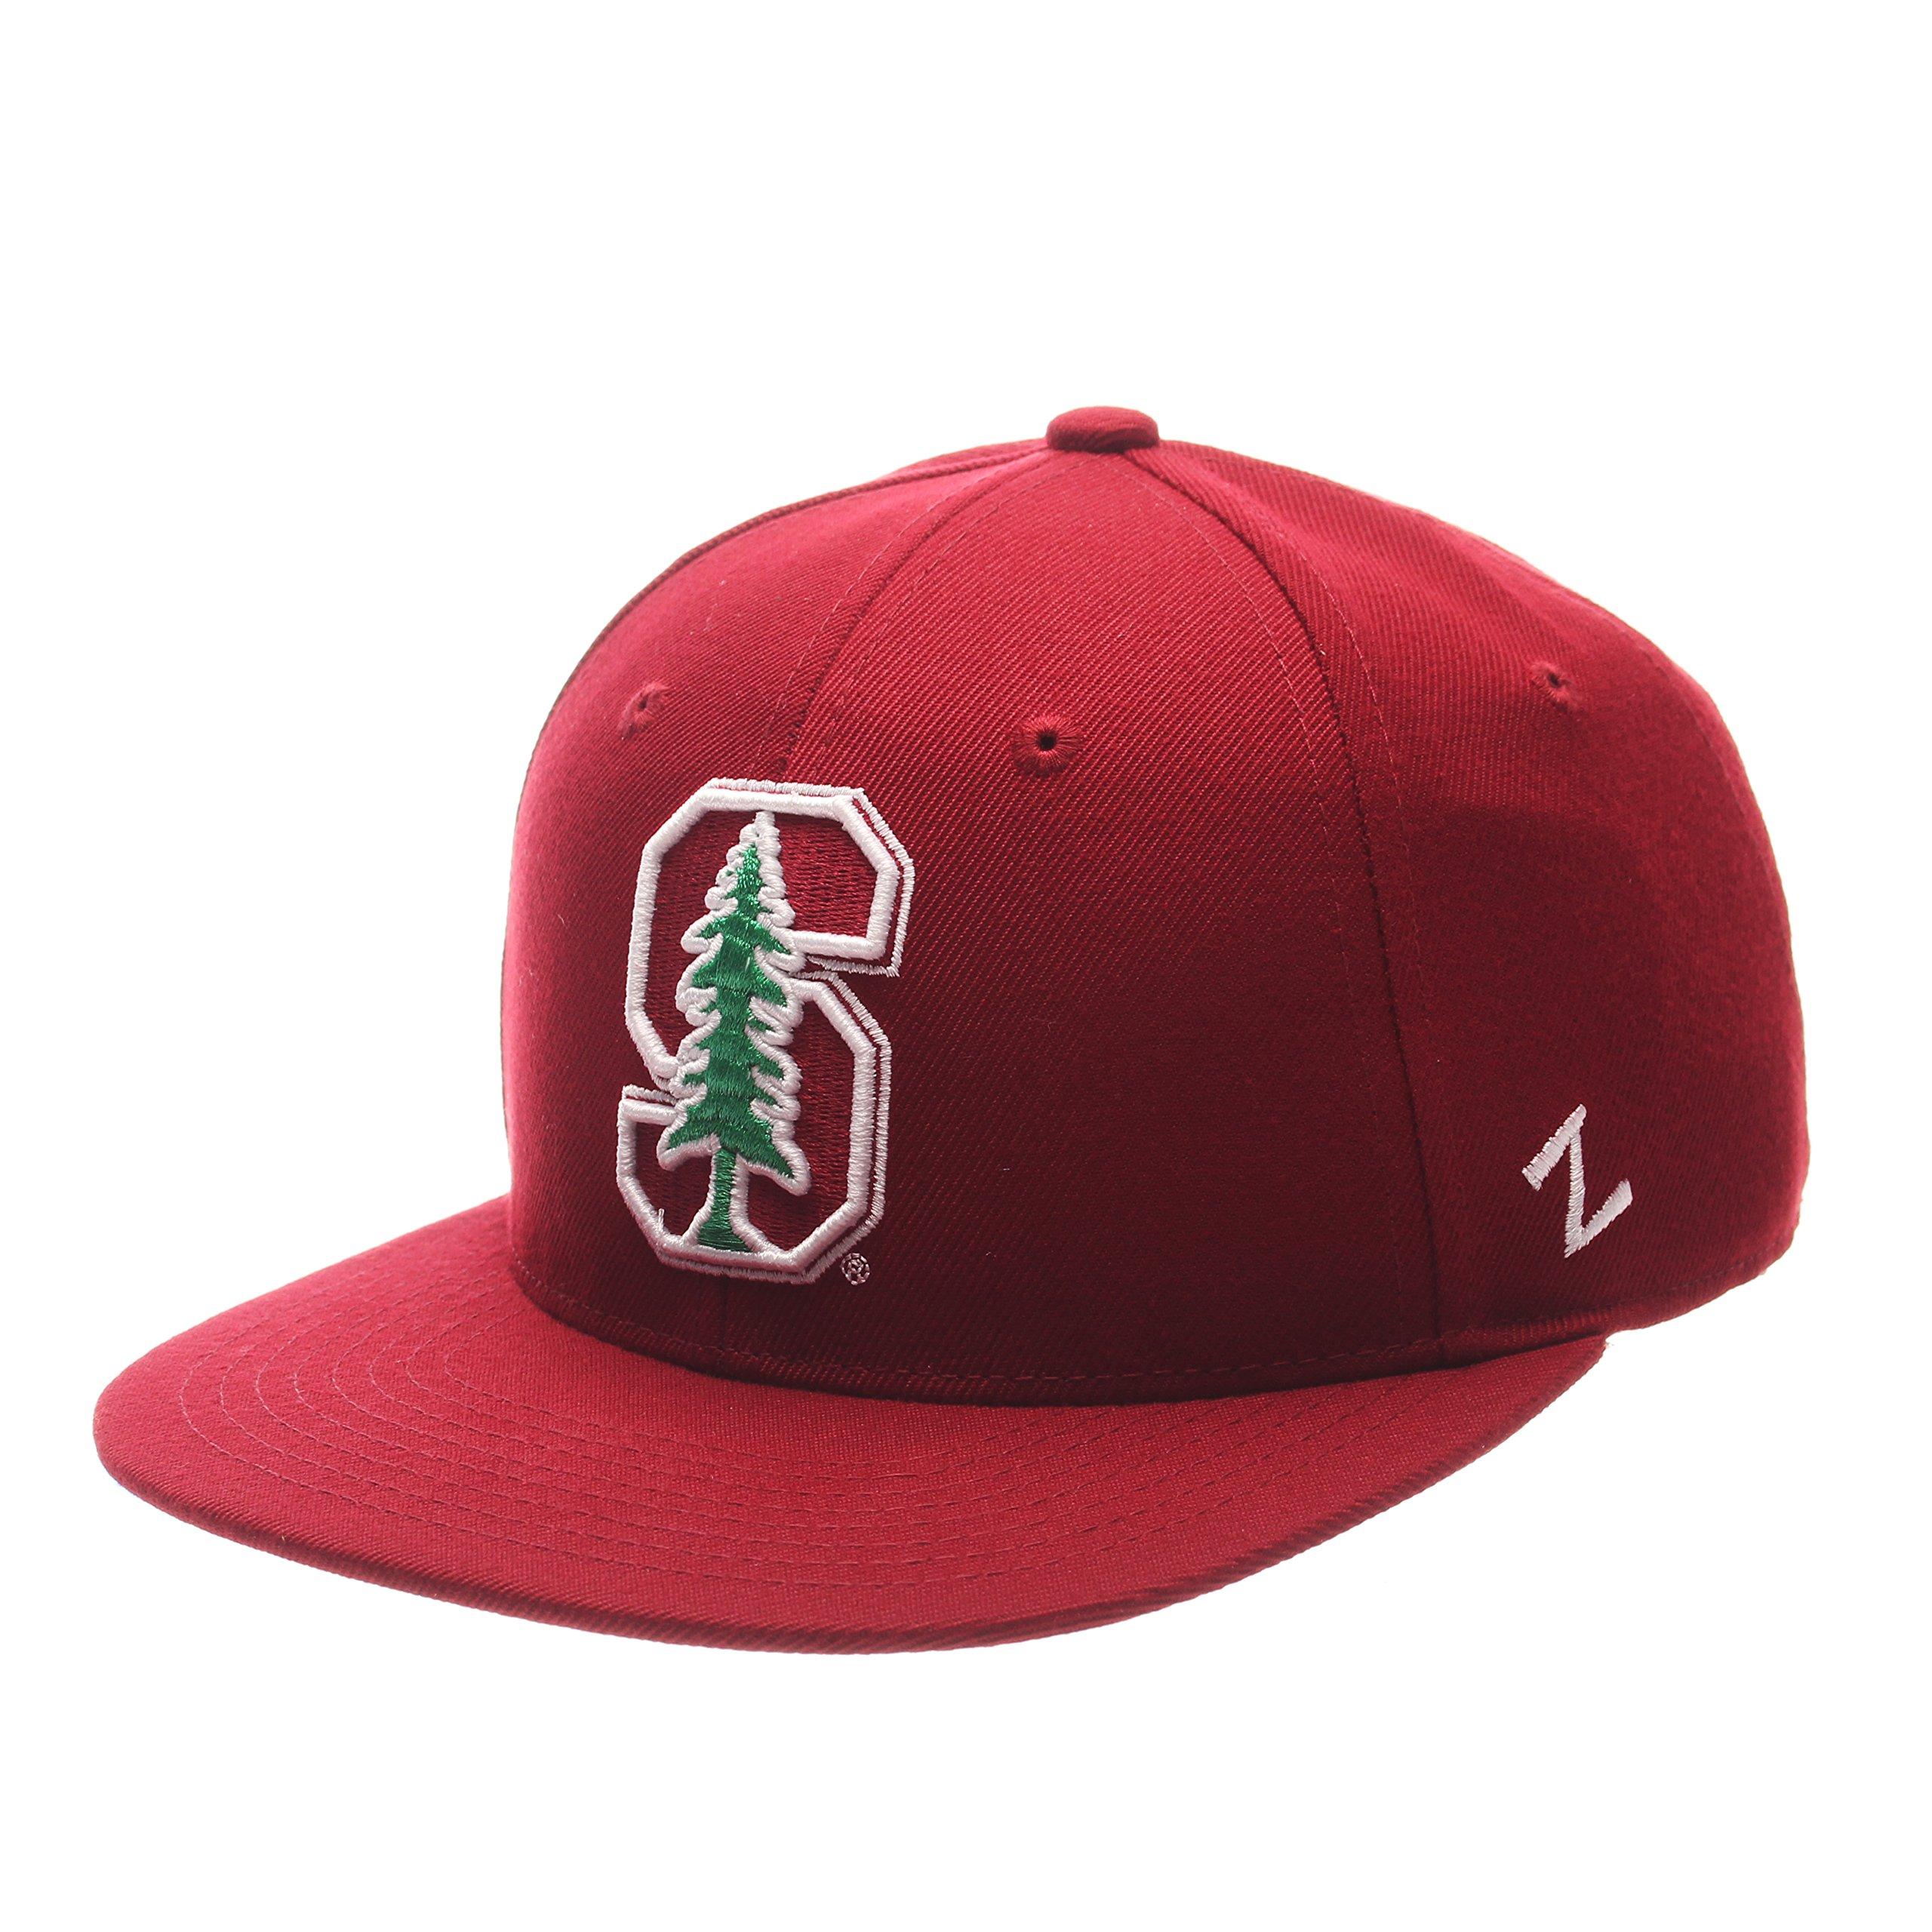 Zephyr NCAA Stanford Cardinal Men's M15 Fitted Hat, Cardinal, Size 7 3/8